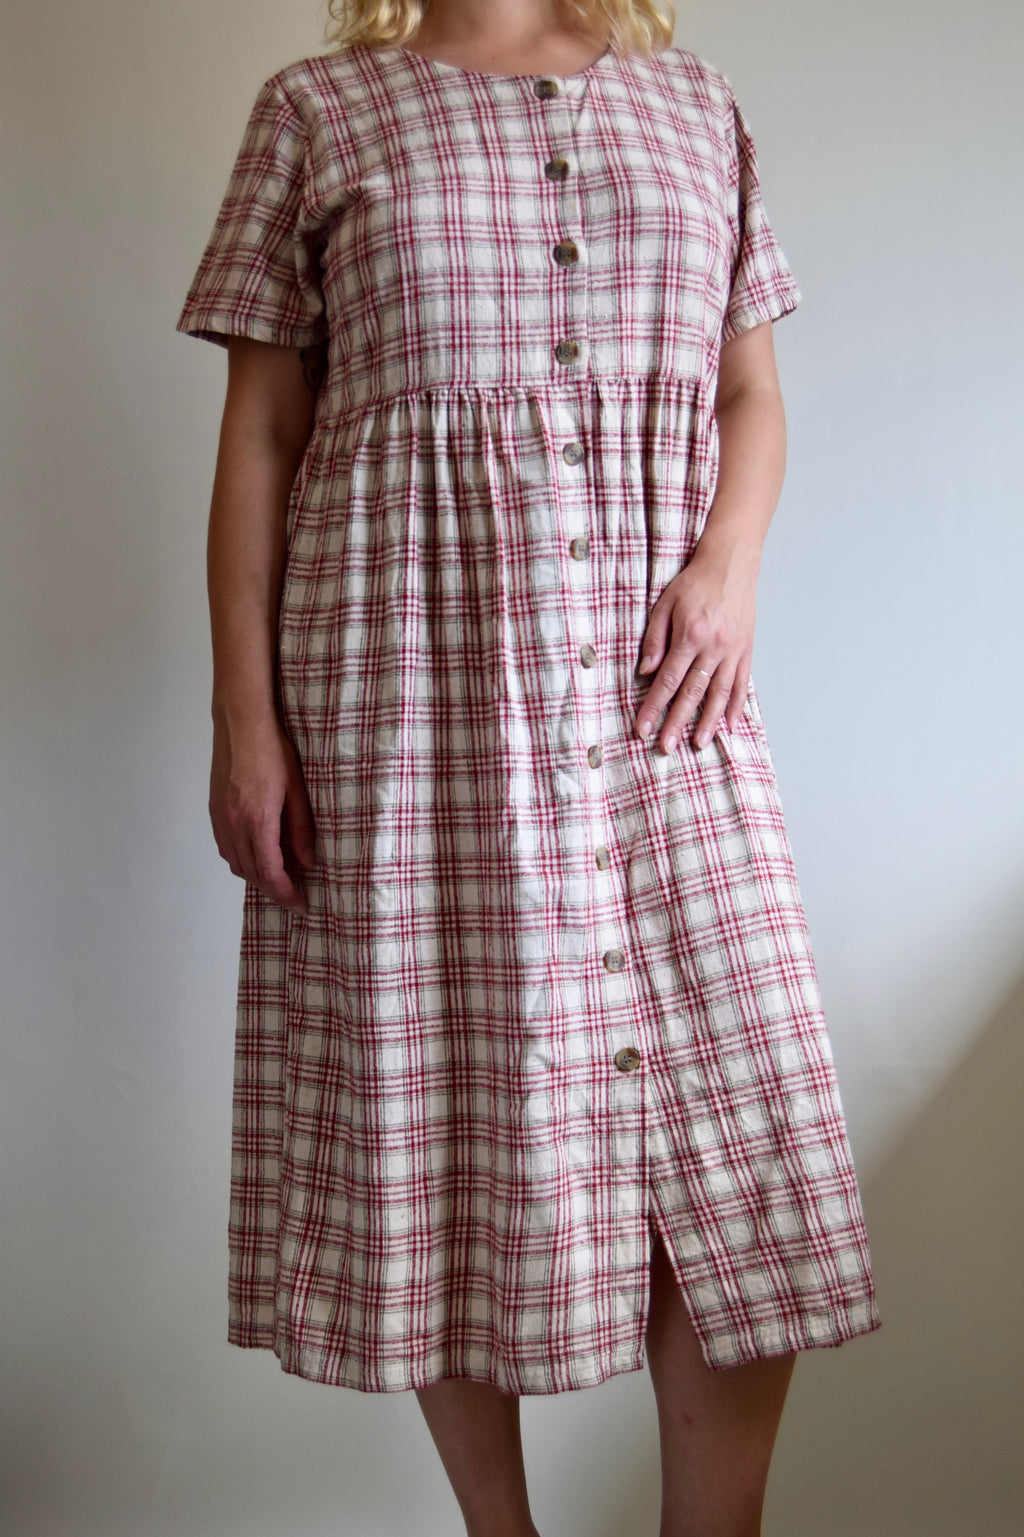 Raw Silk Oatmeal and Cranberry Plaid Dress